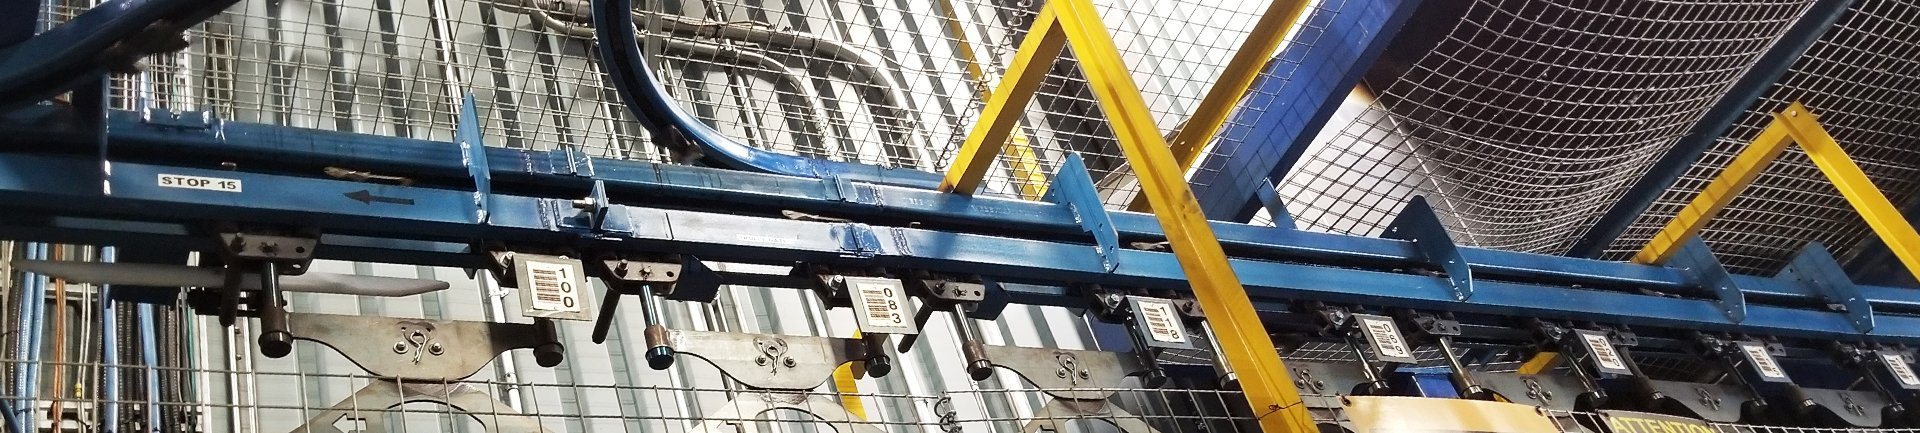 Pacline carries Unibilt power and free conveyors